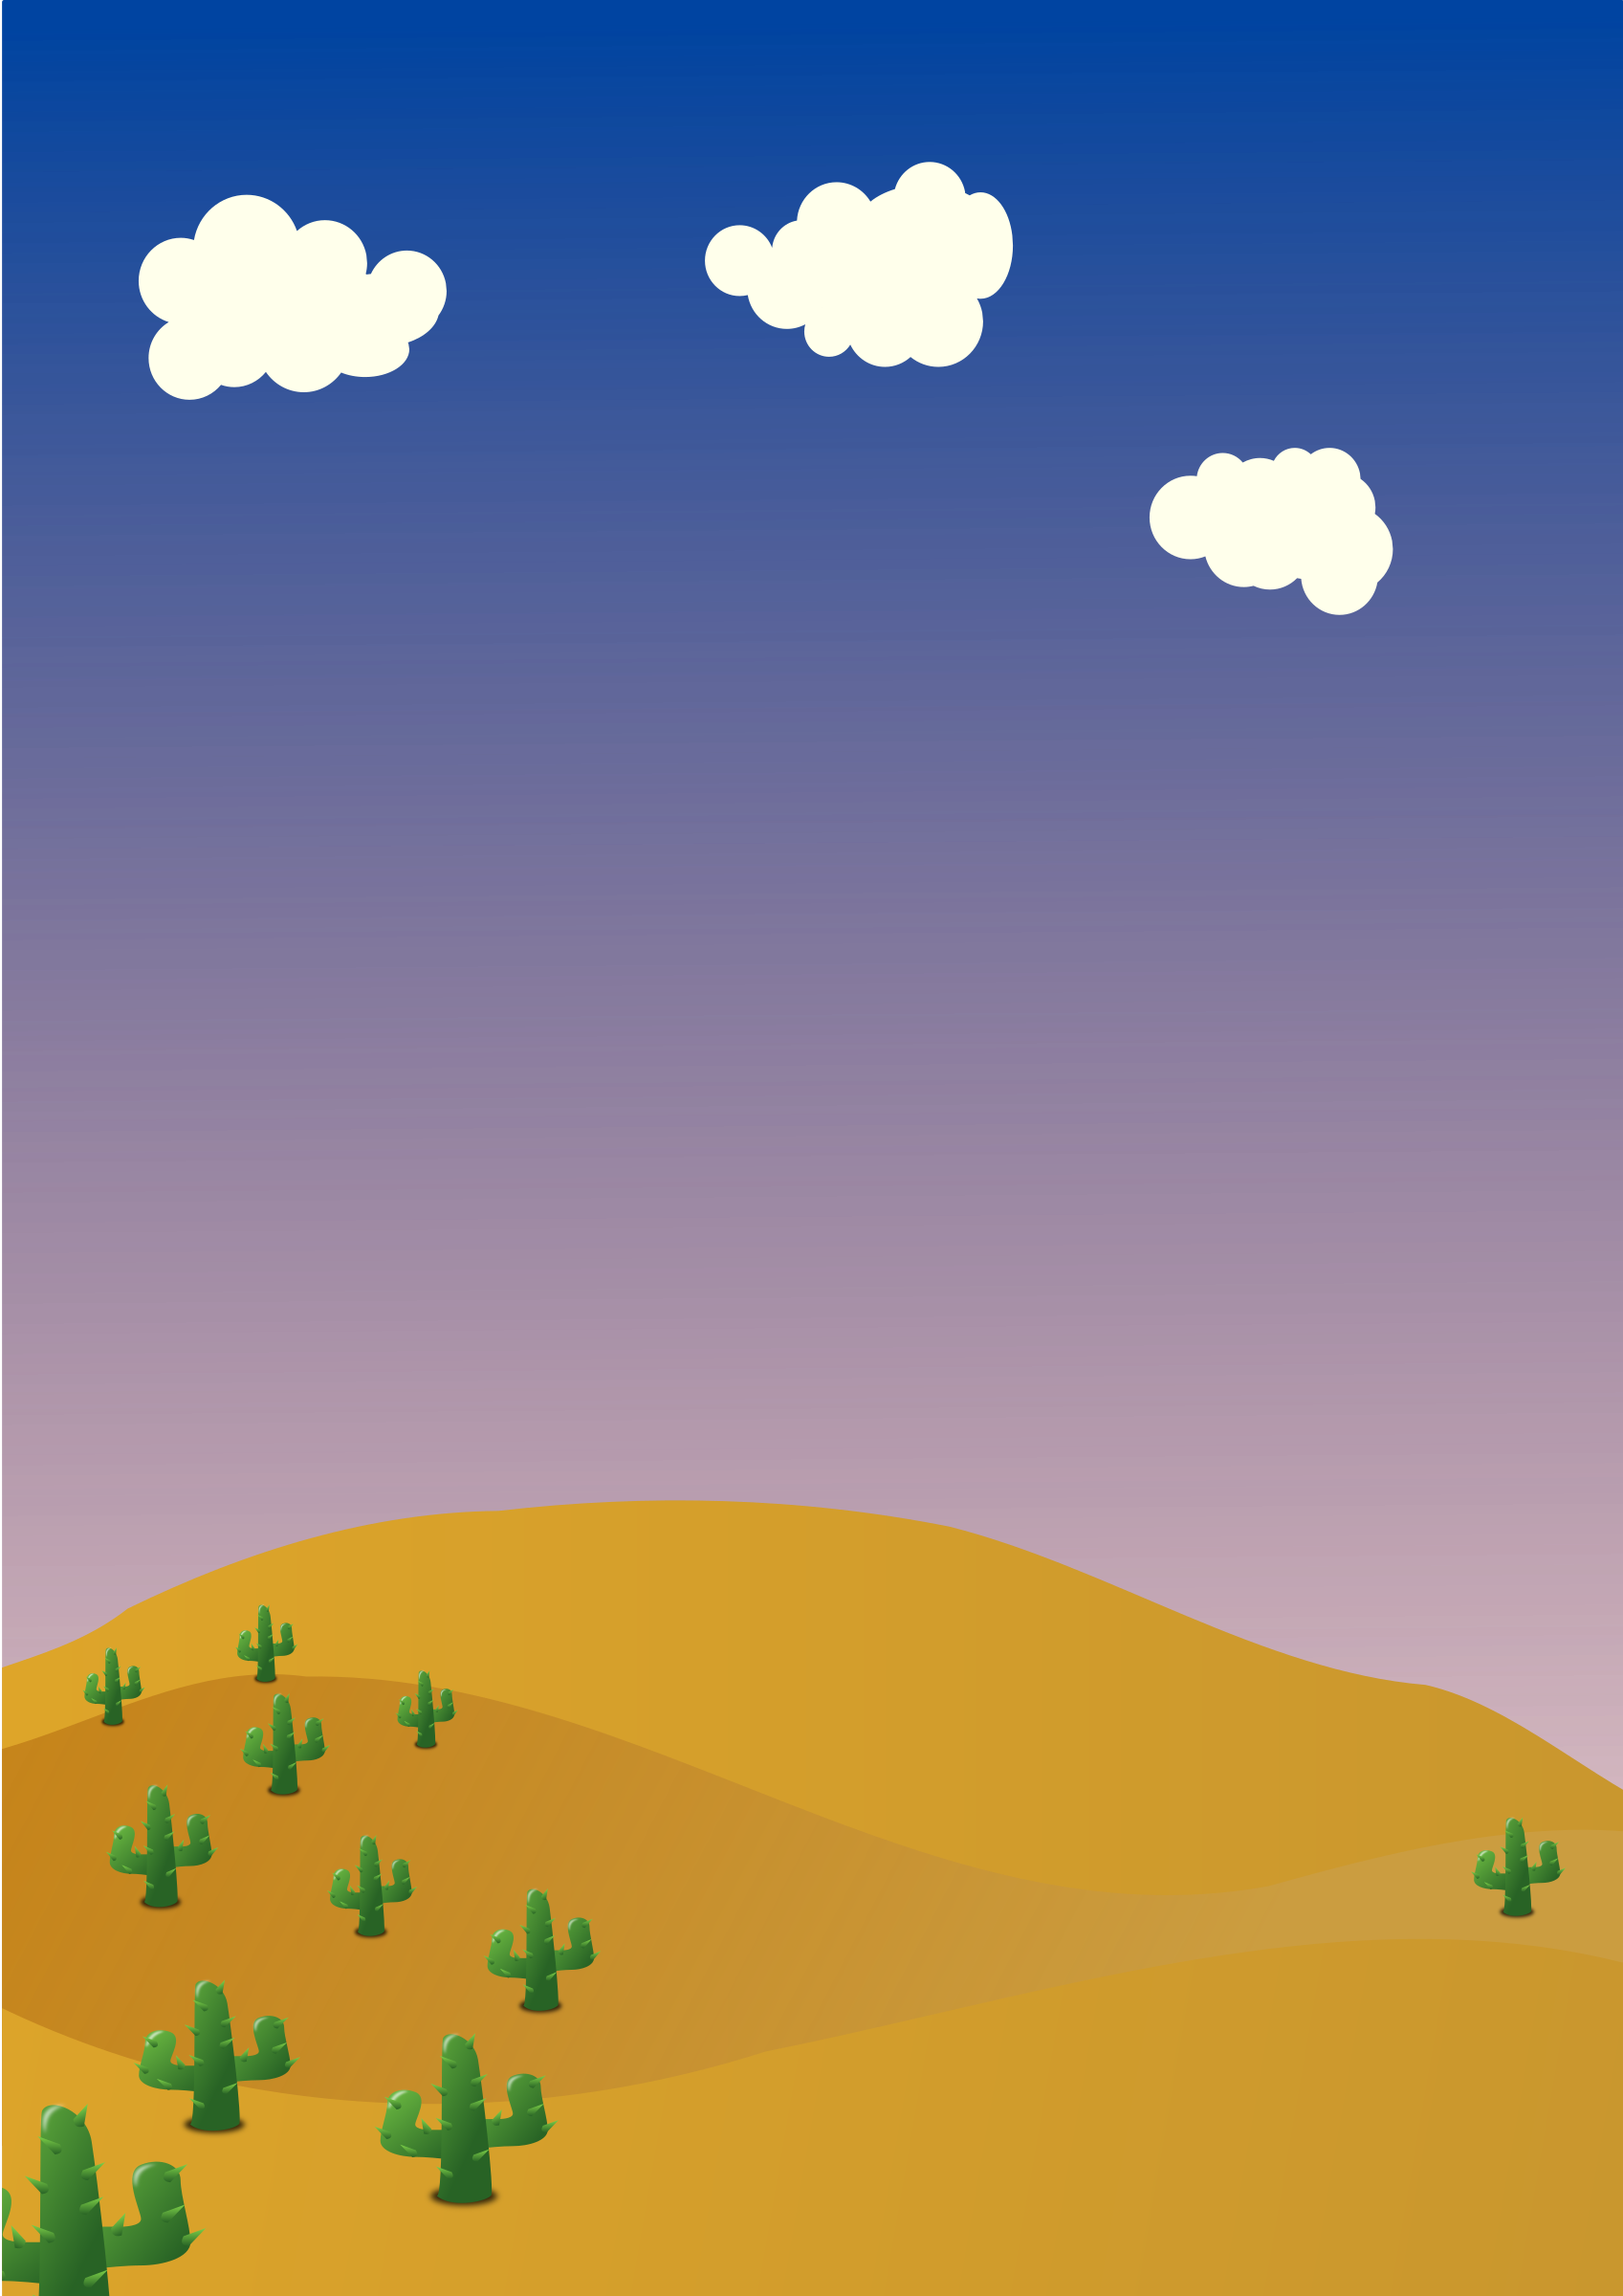 Desert clipart svg. Background icons png free